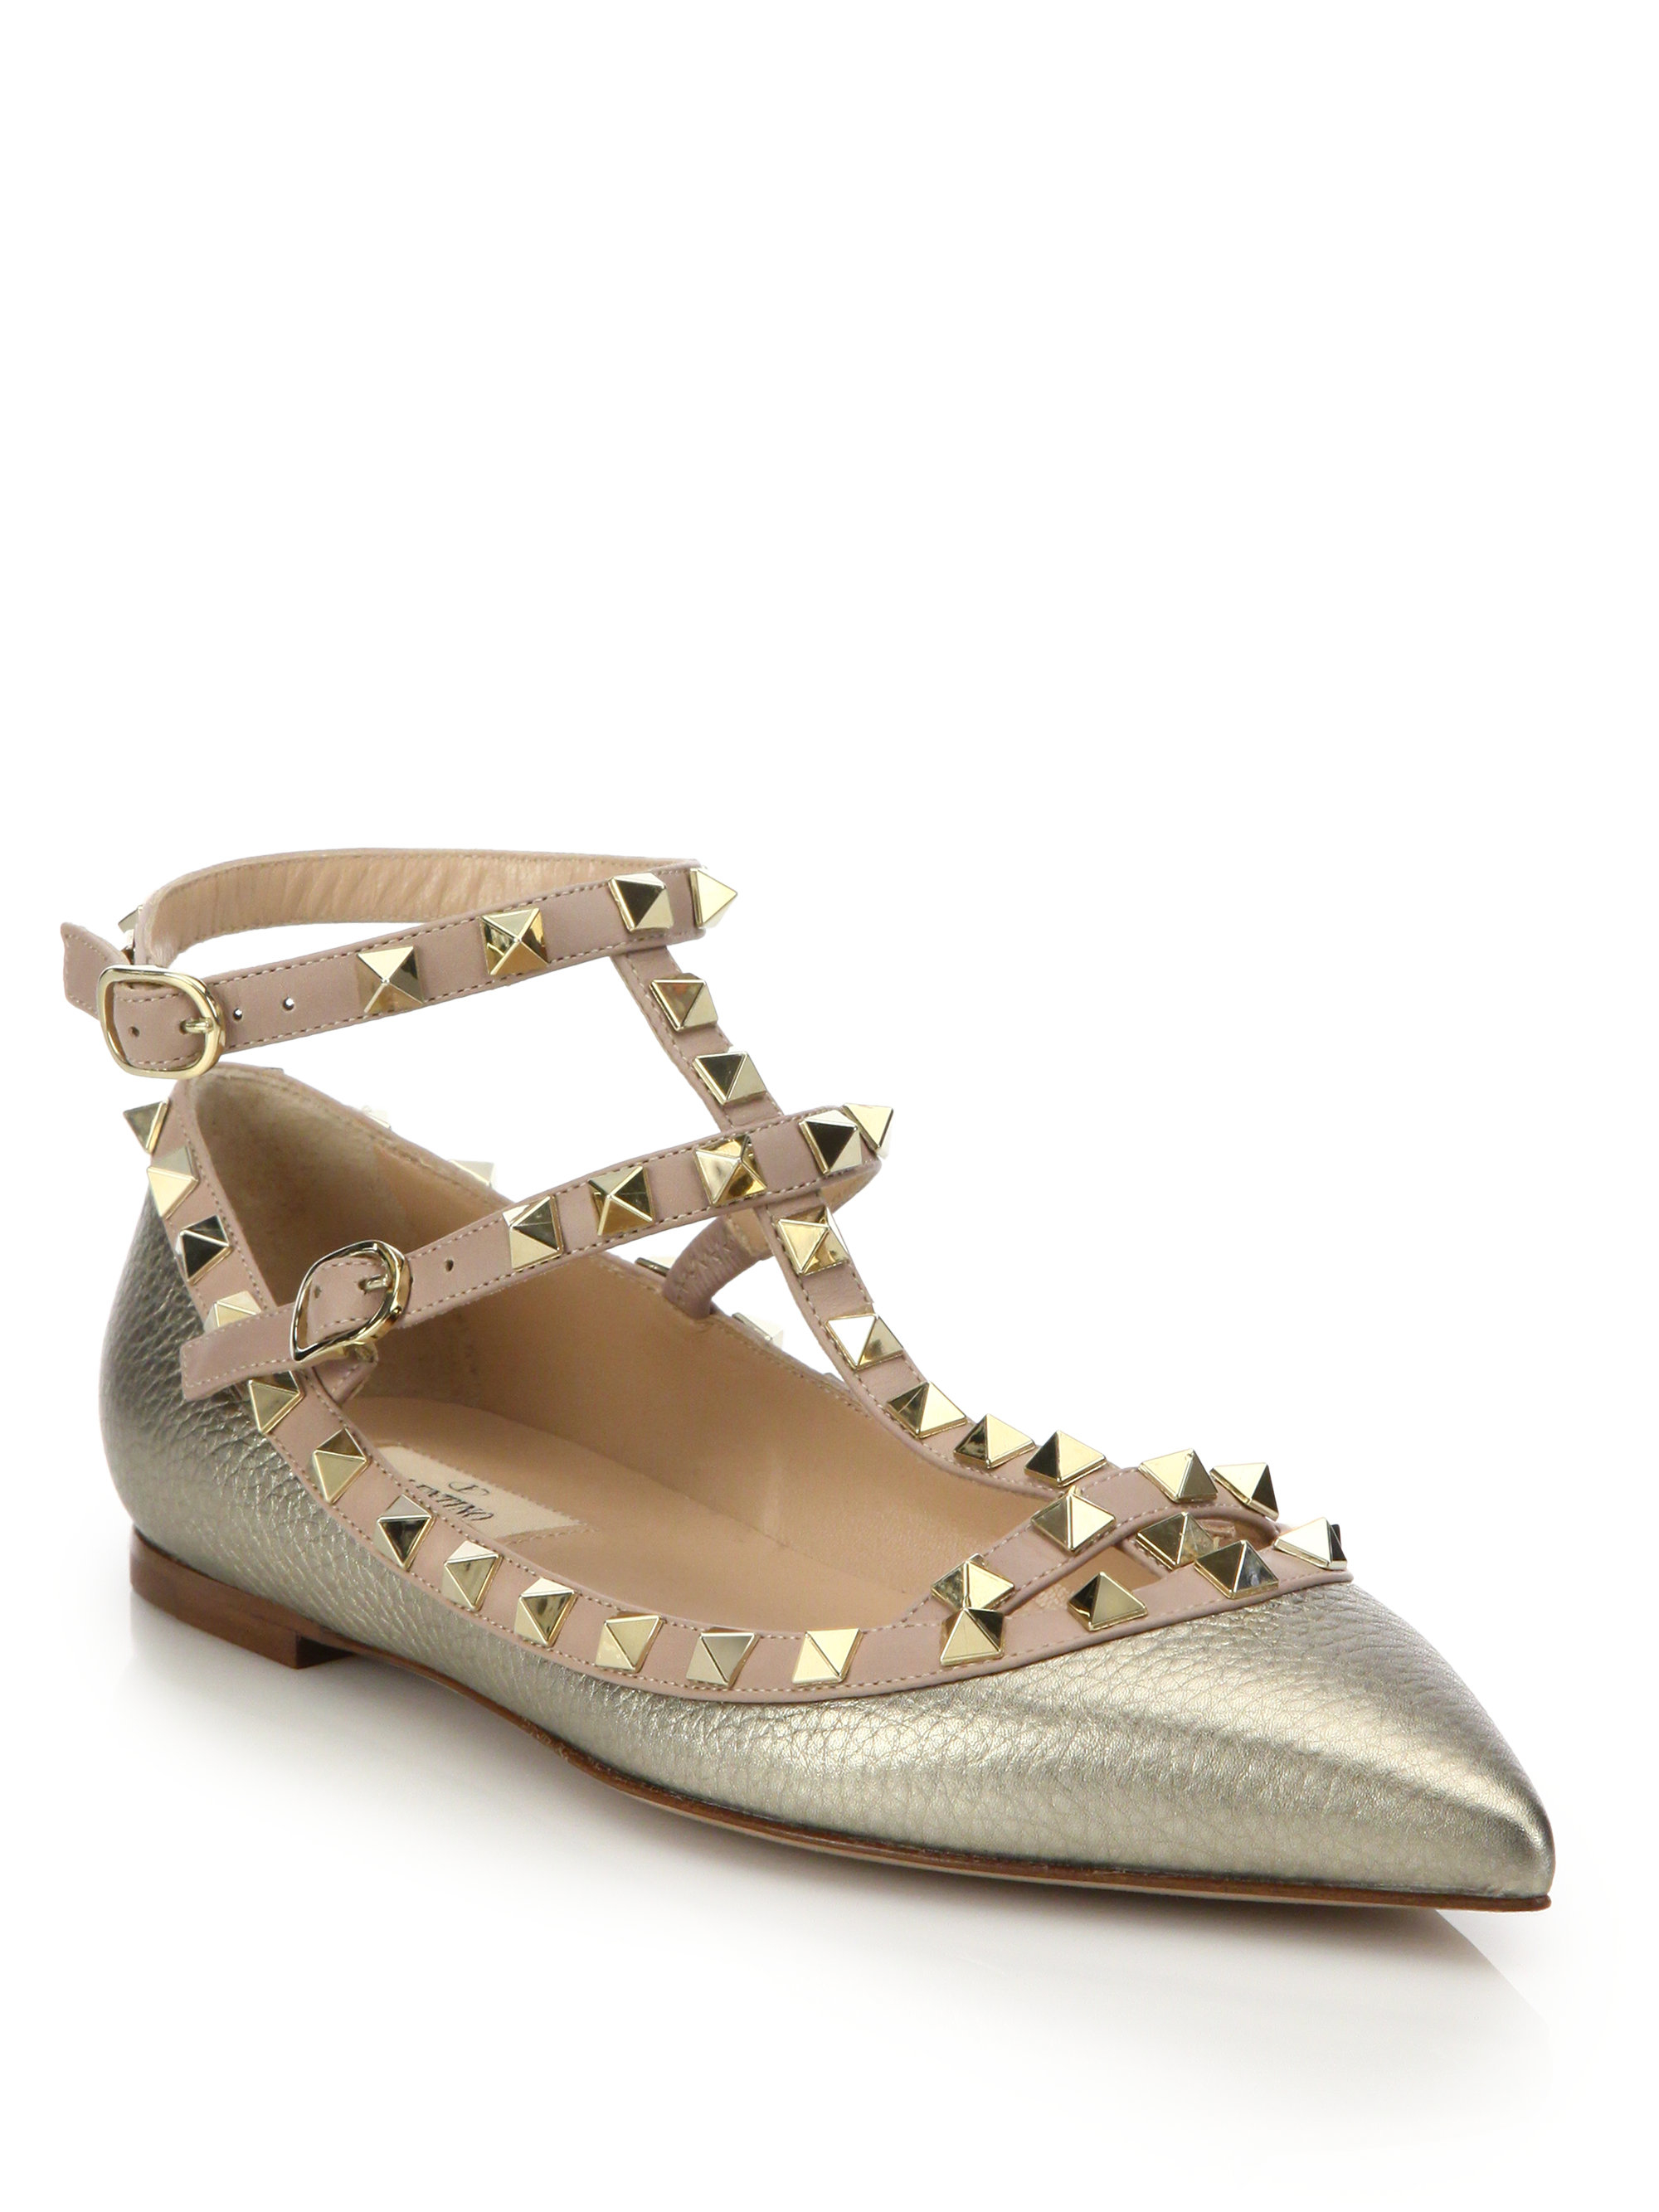 Valentino Metallic Rockstud Flats popular for sale SFArxjtBw